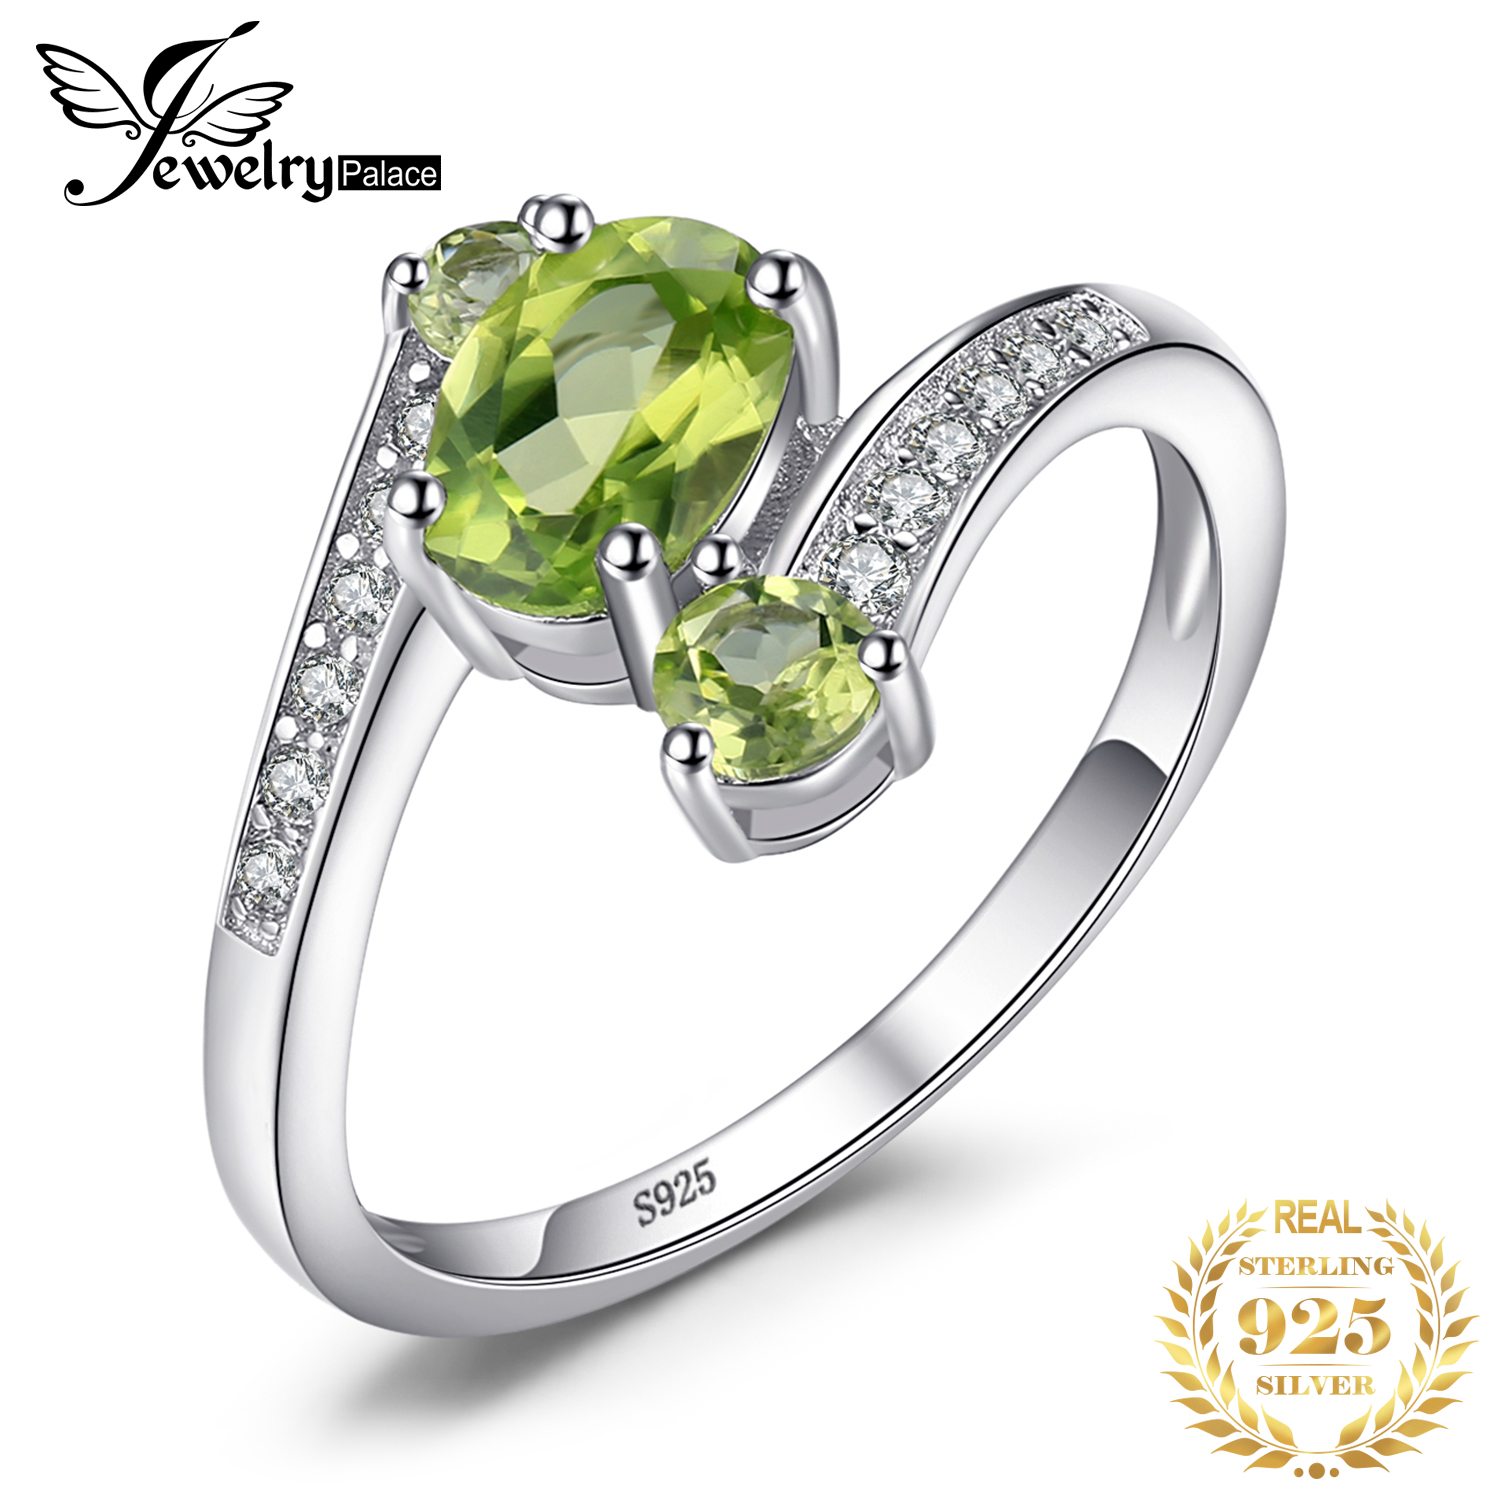 JewelryPalace 3 Stones Genuine Peridot Ring 925 Sterling Silver Rings For Women Engagement Ring Silver 925 Gemstones Jewelry